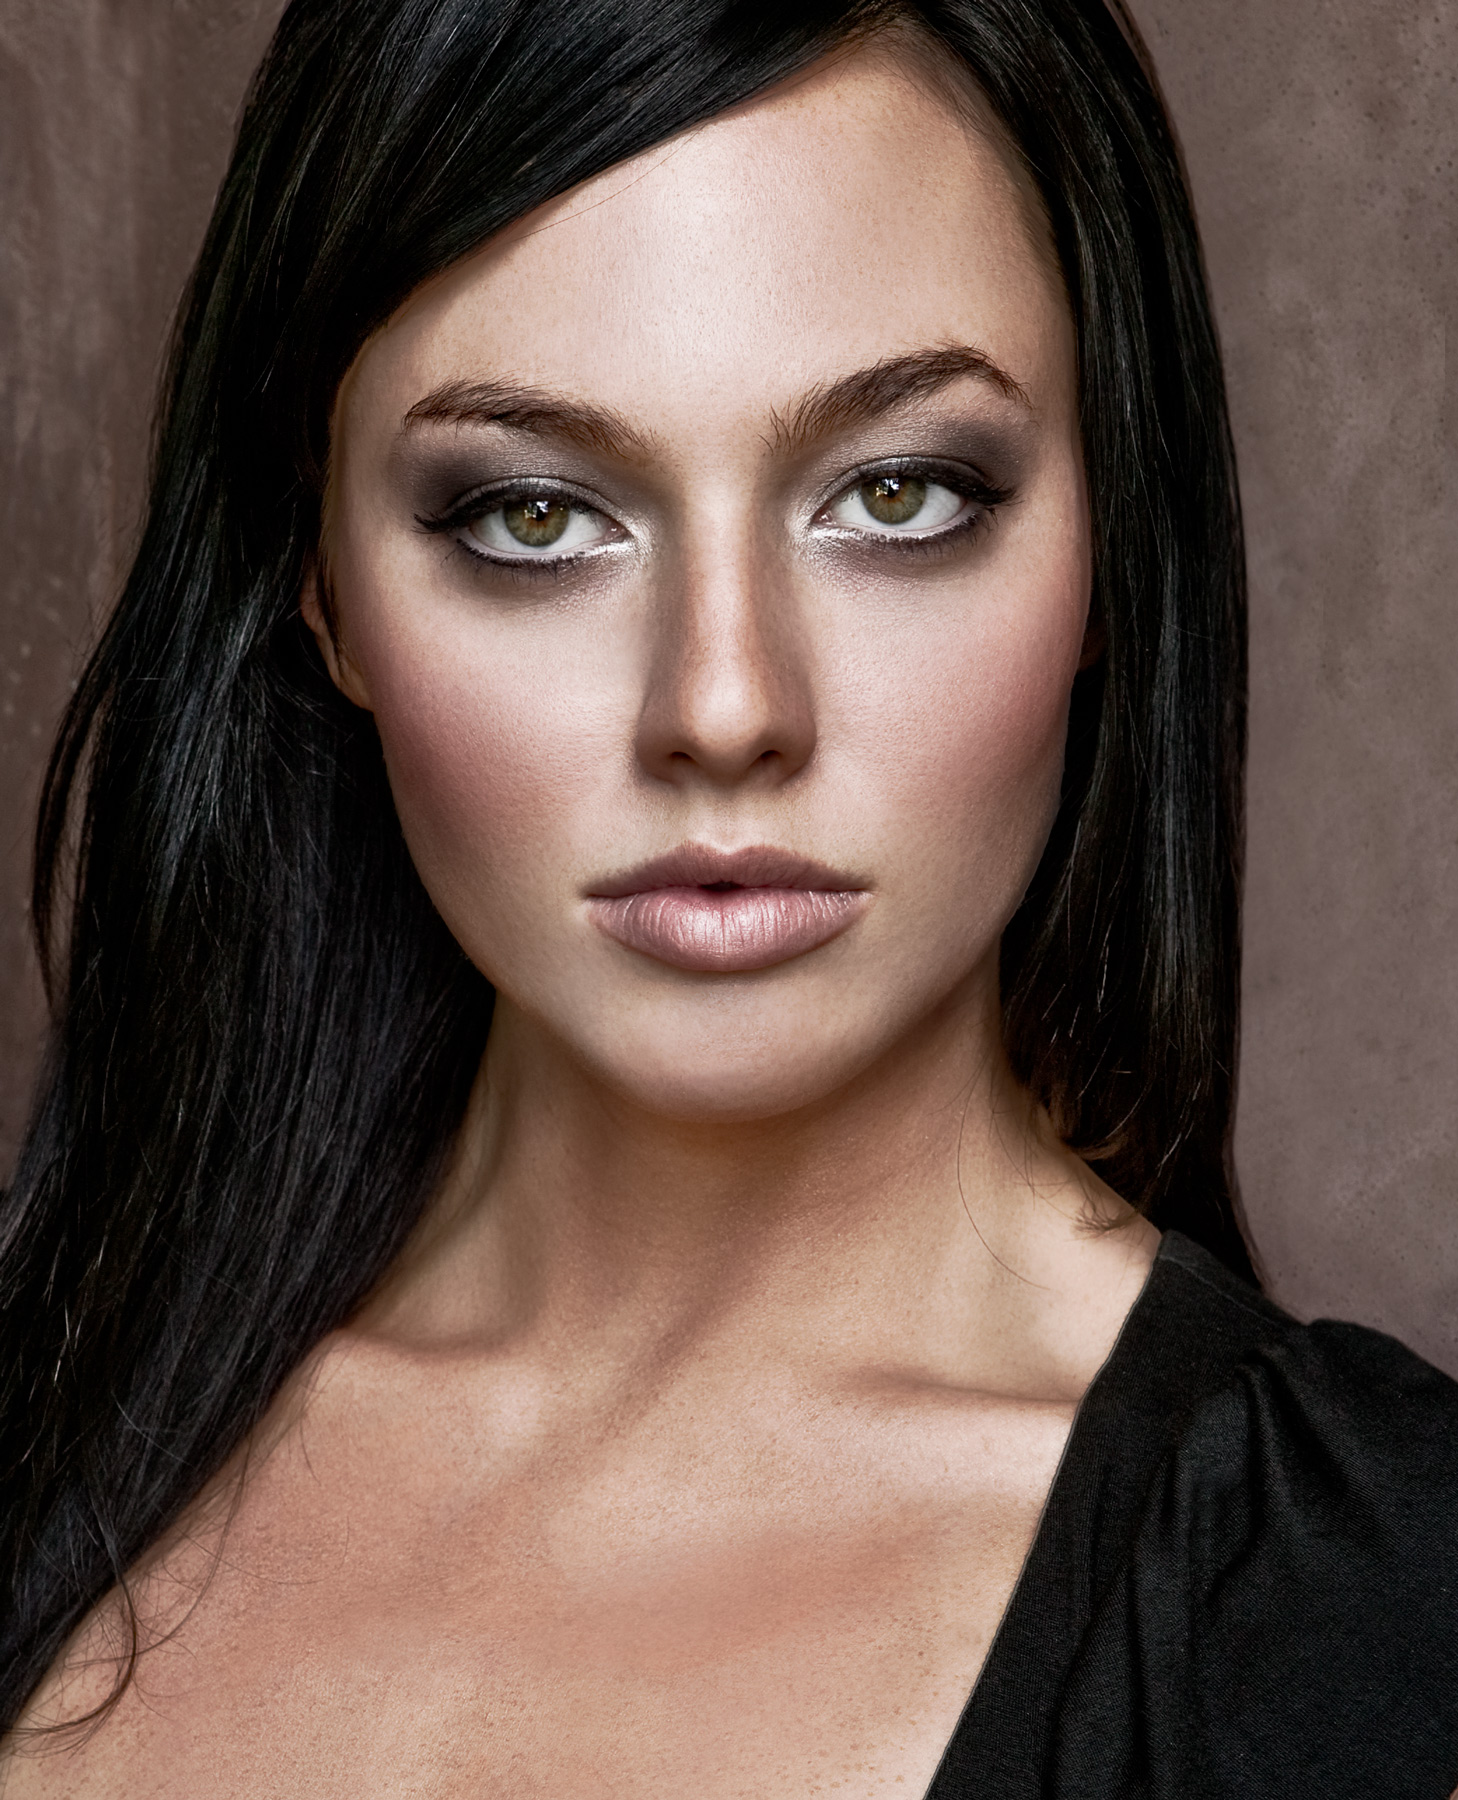 Beauty Fashion Portrait | Dovis Bird Agency Photography